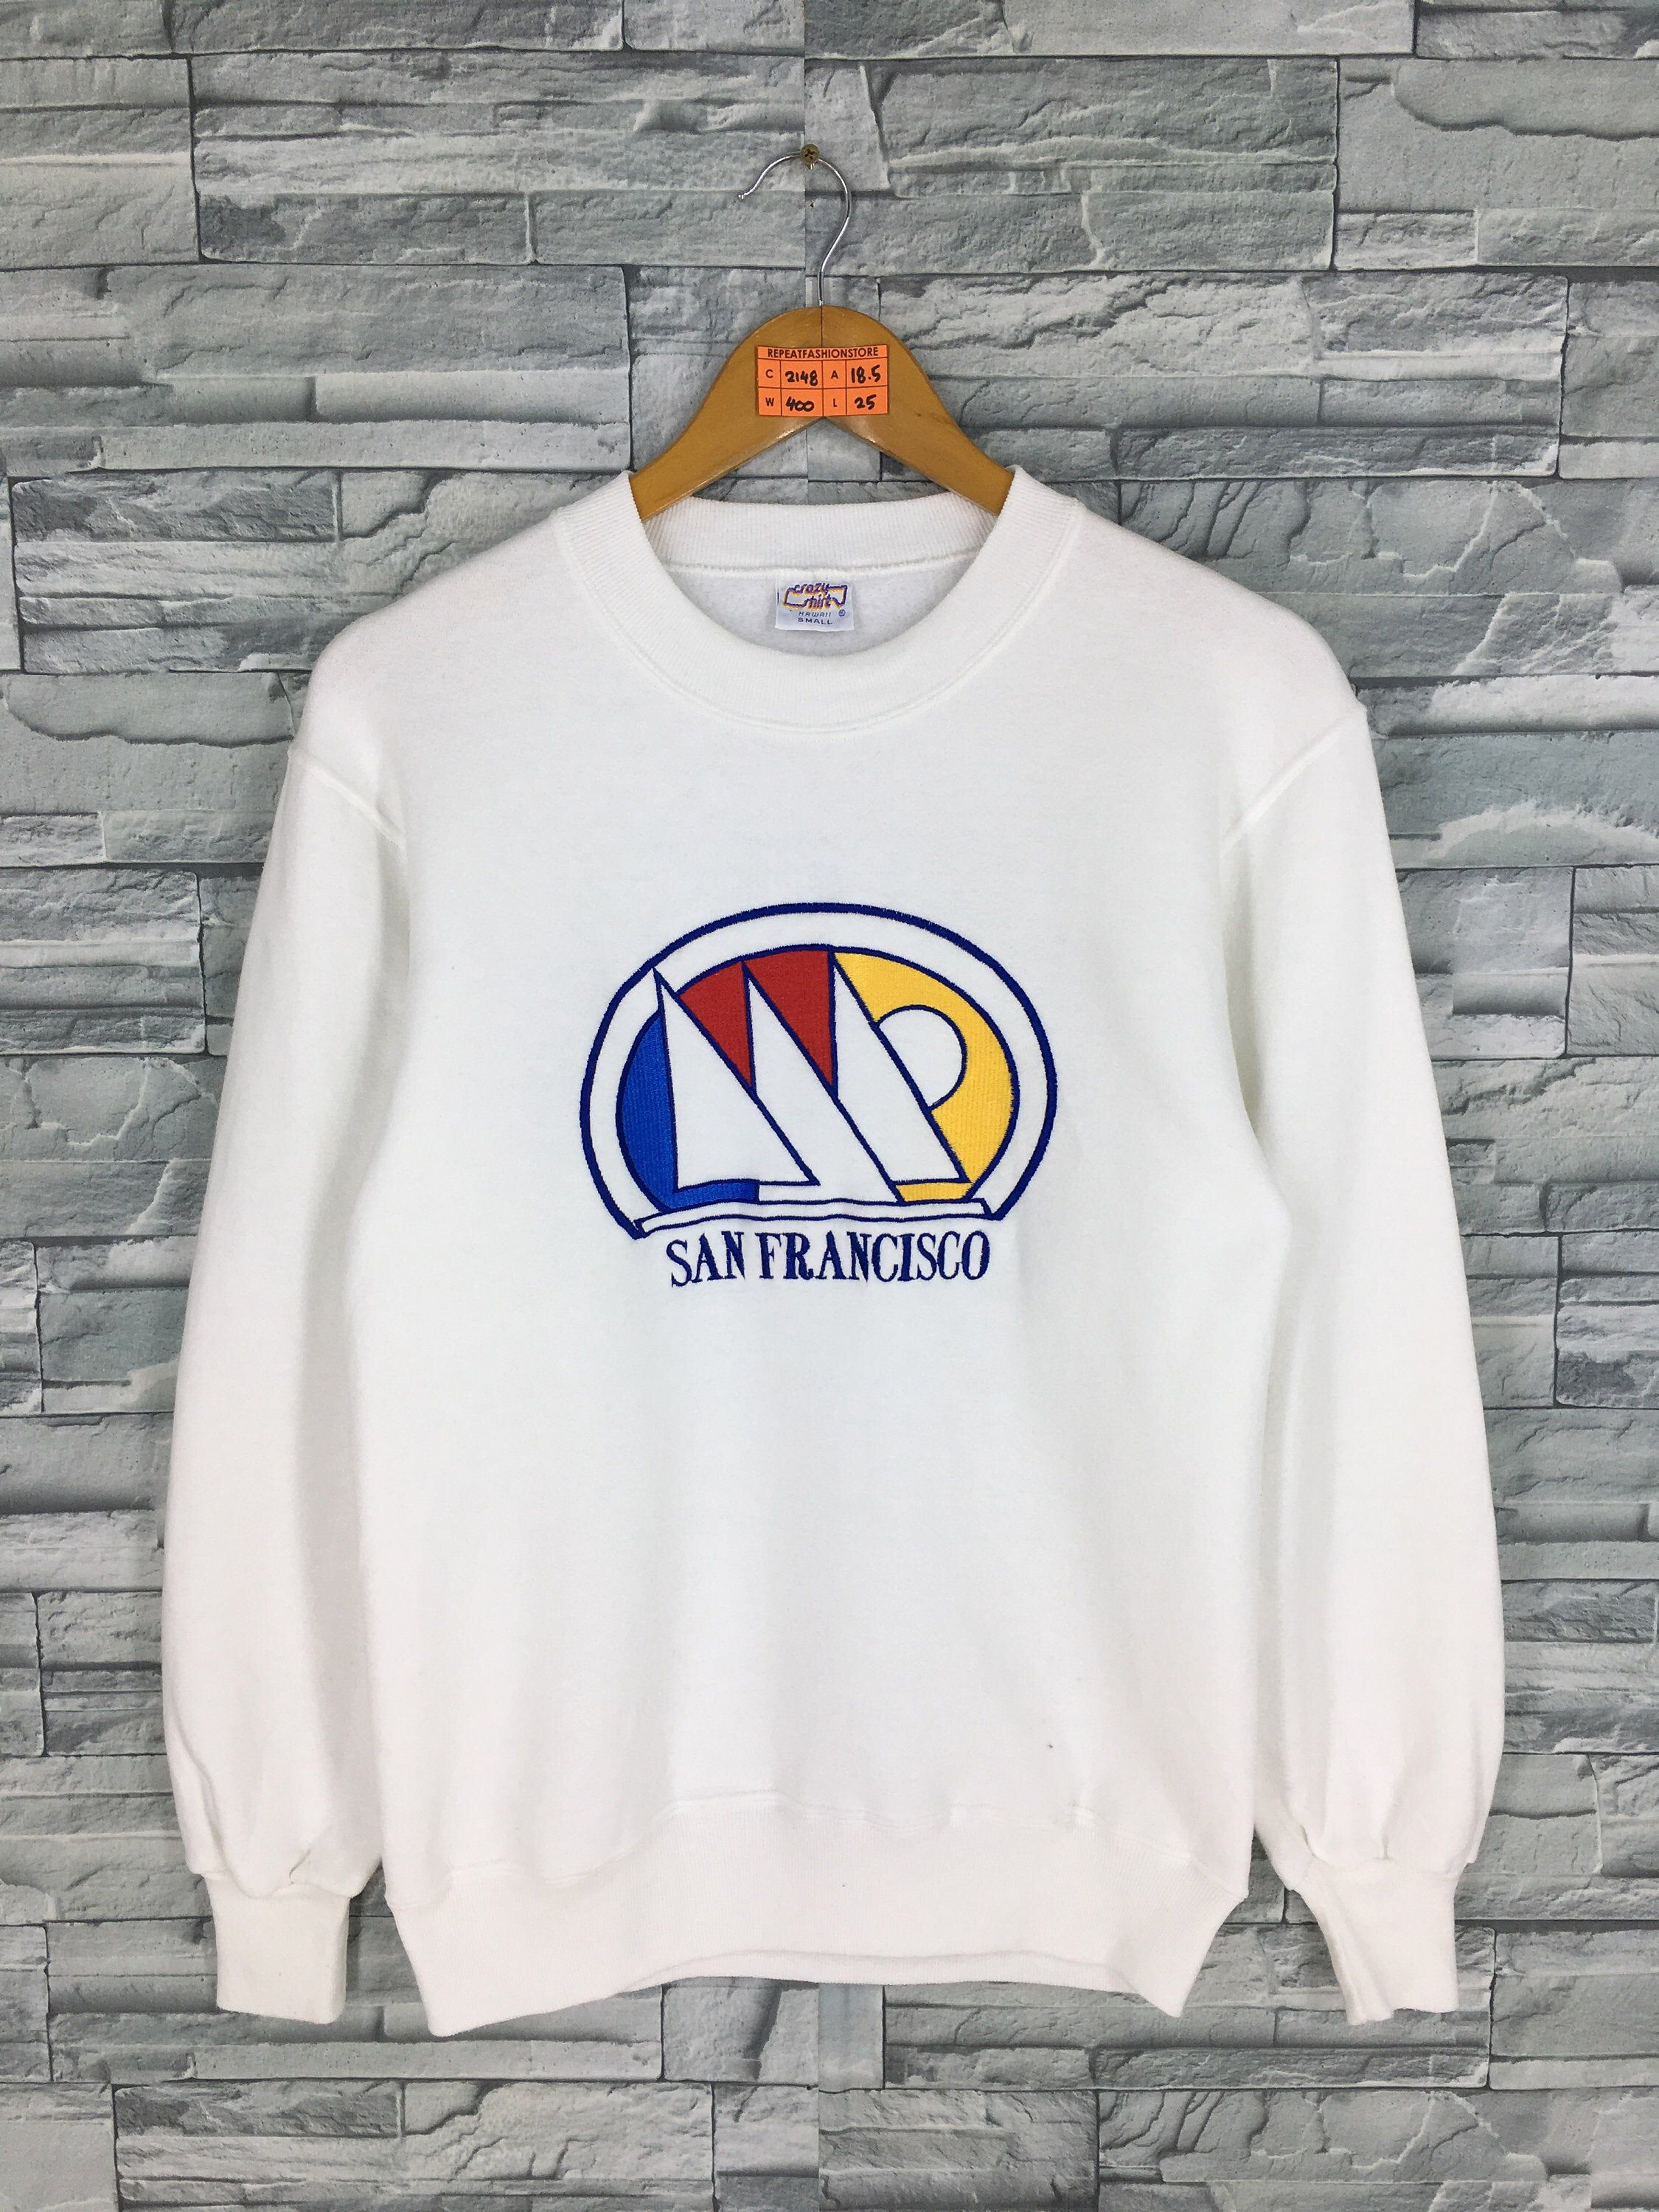 Excited To Share This Item From My Etsy Shop Vintage 90 S Crazy Shirts Yatch Sweatshirt Small Jumper San Francisco Embroidery Yatch Club Sailing Sport White P